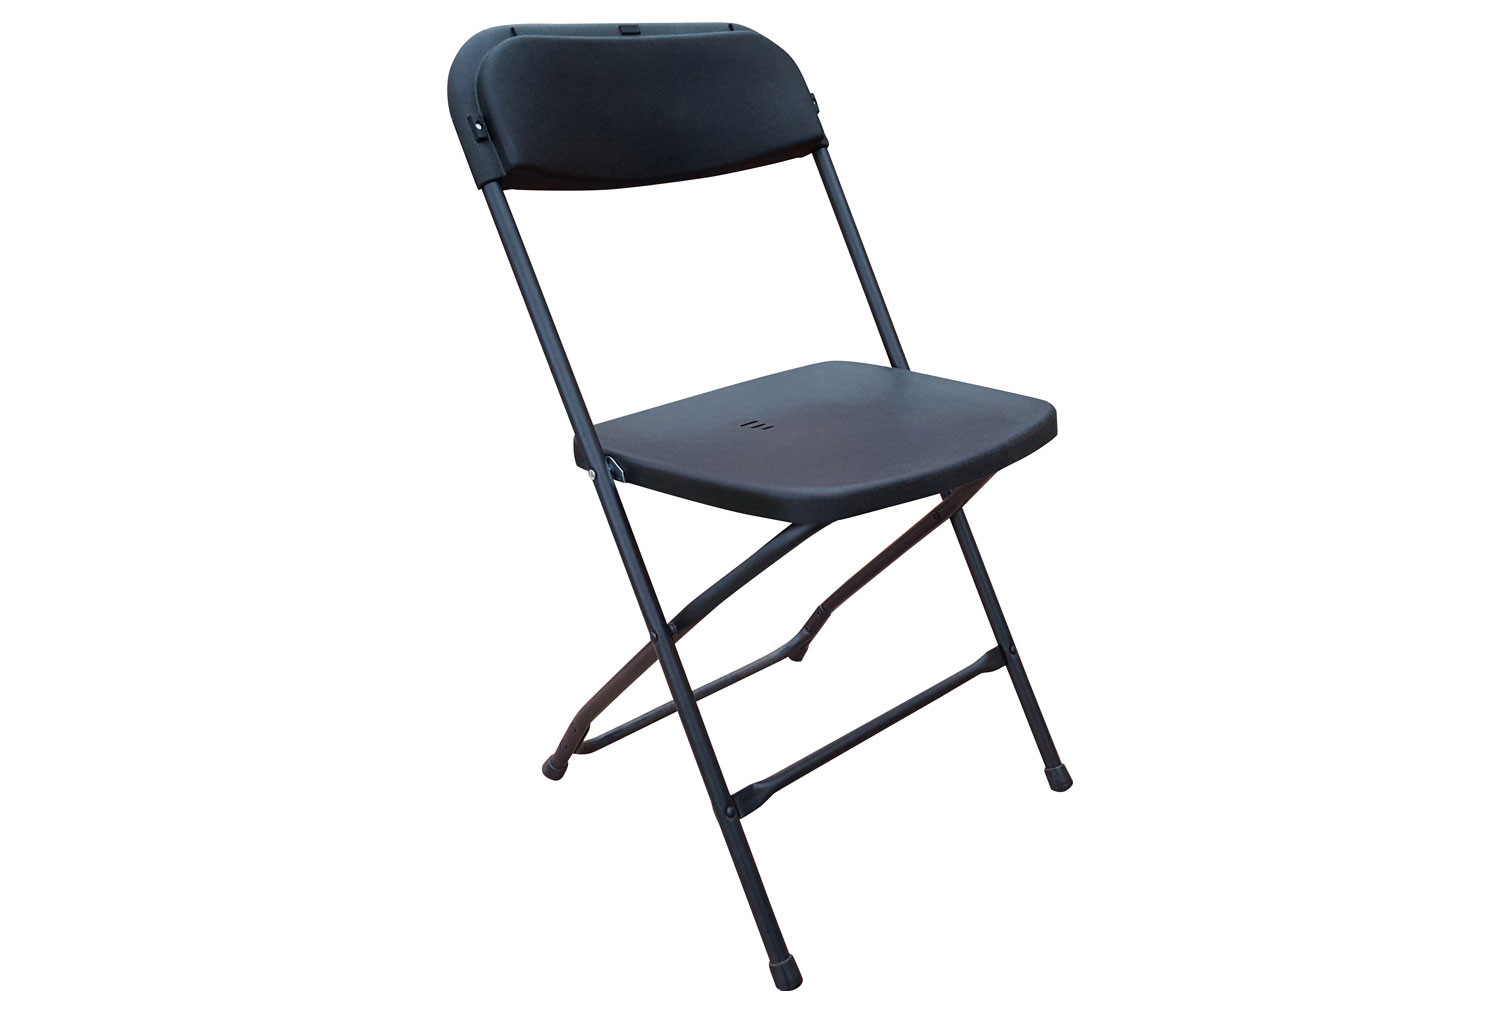 Pack Of 6 Bunche Plastic Folding Chairs Furniture At Work